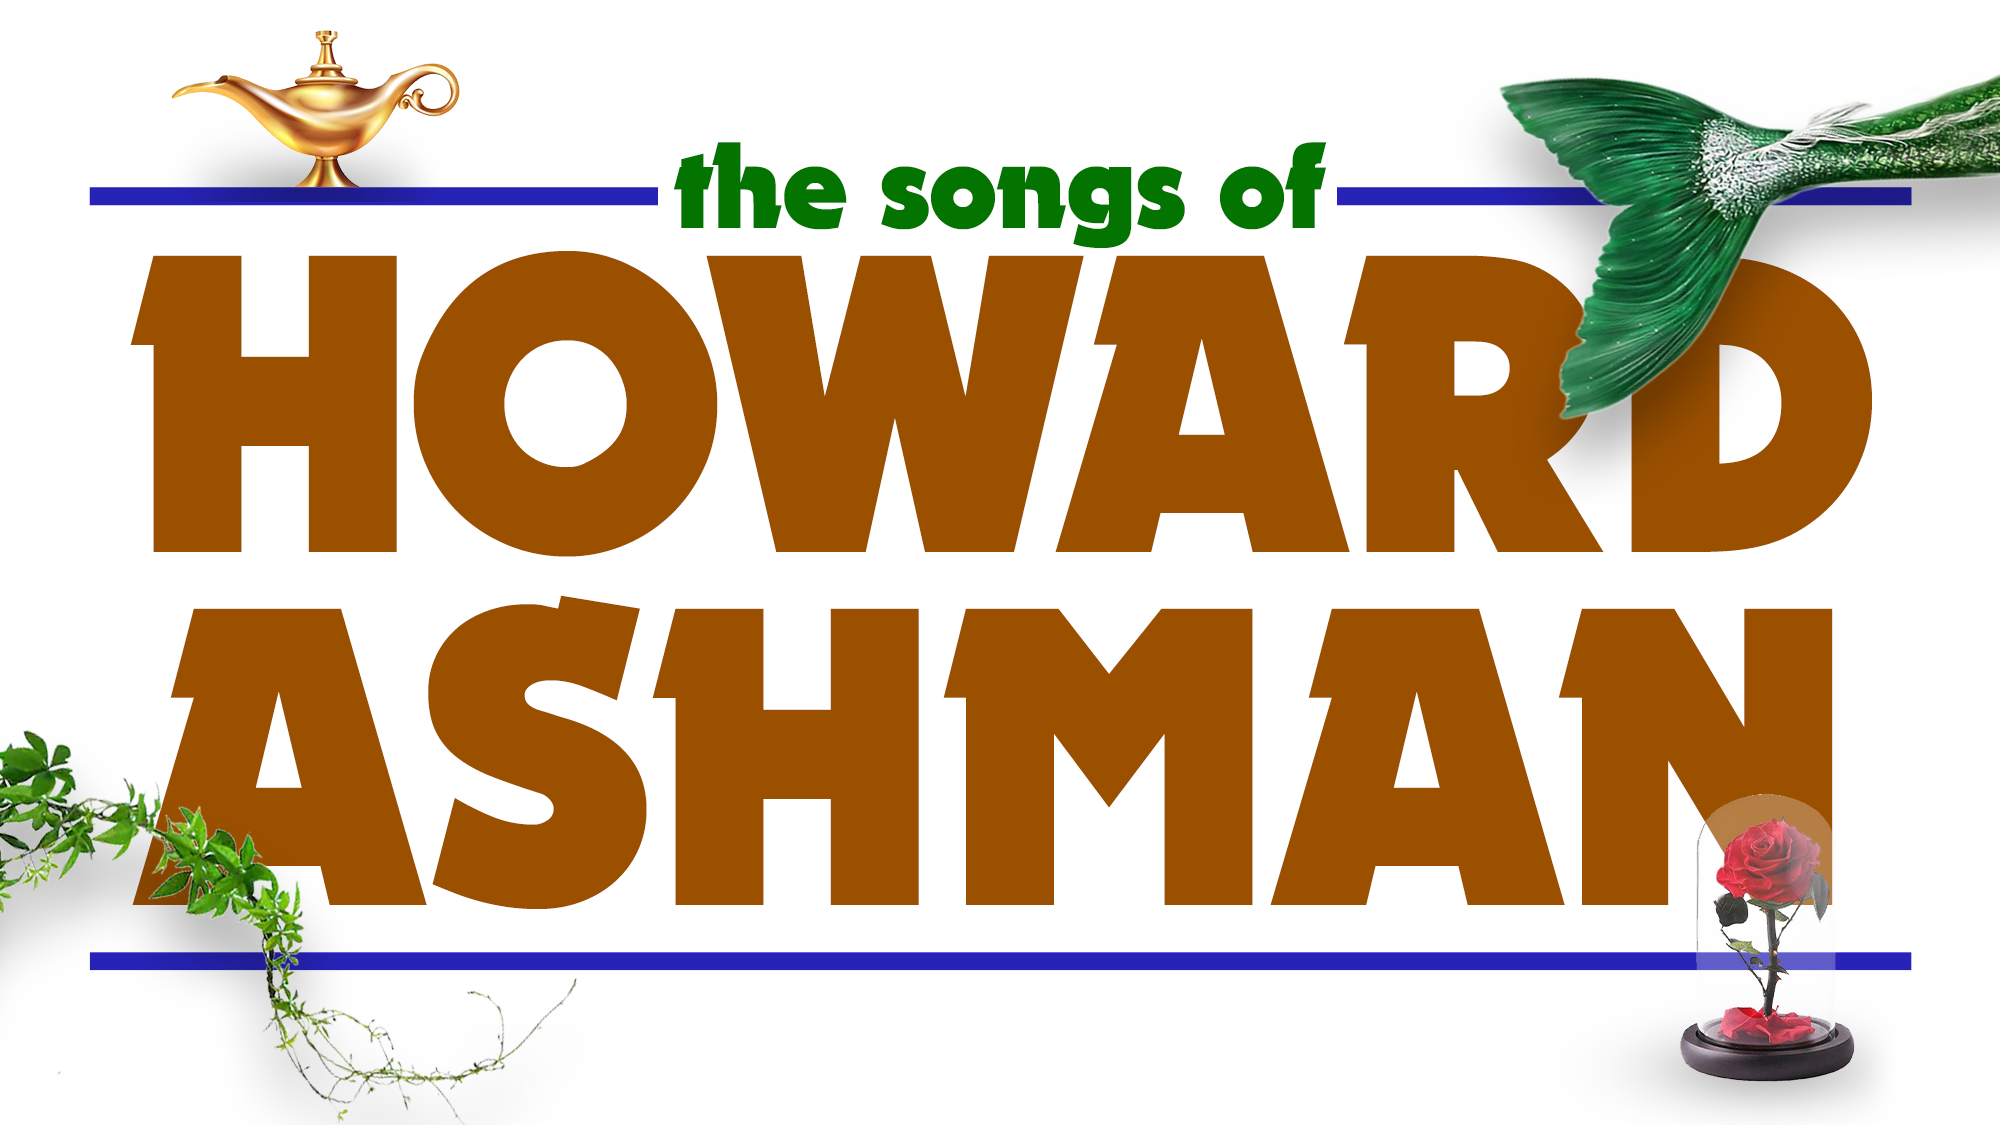 The Songs of Howard Ashman